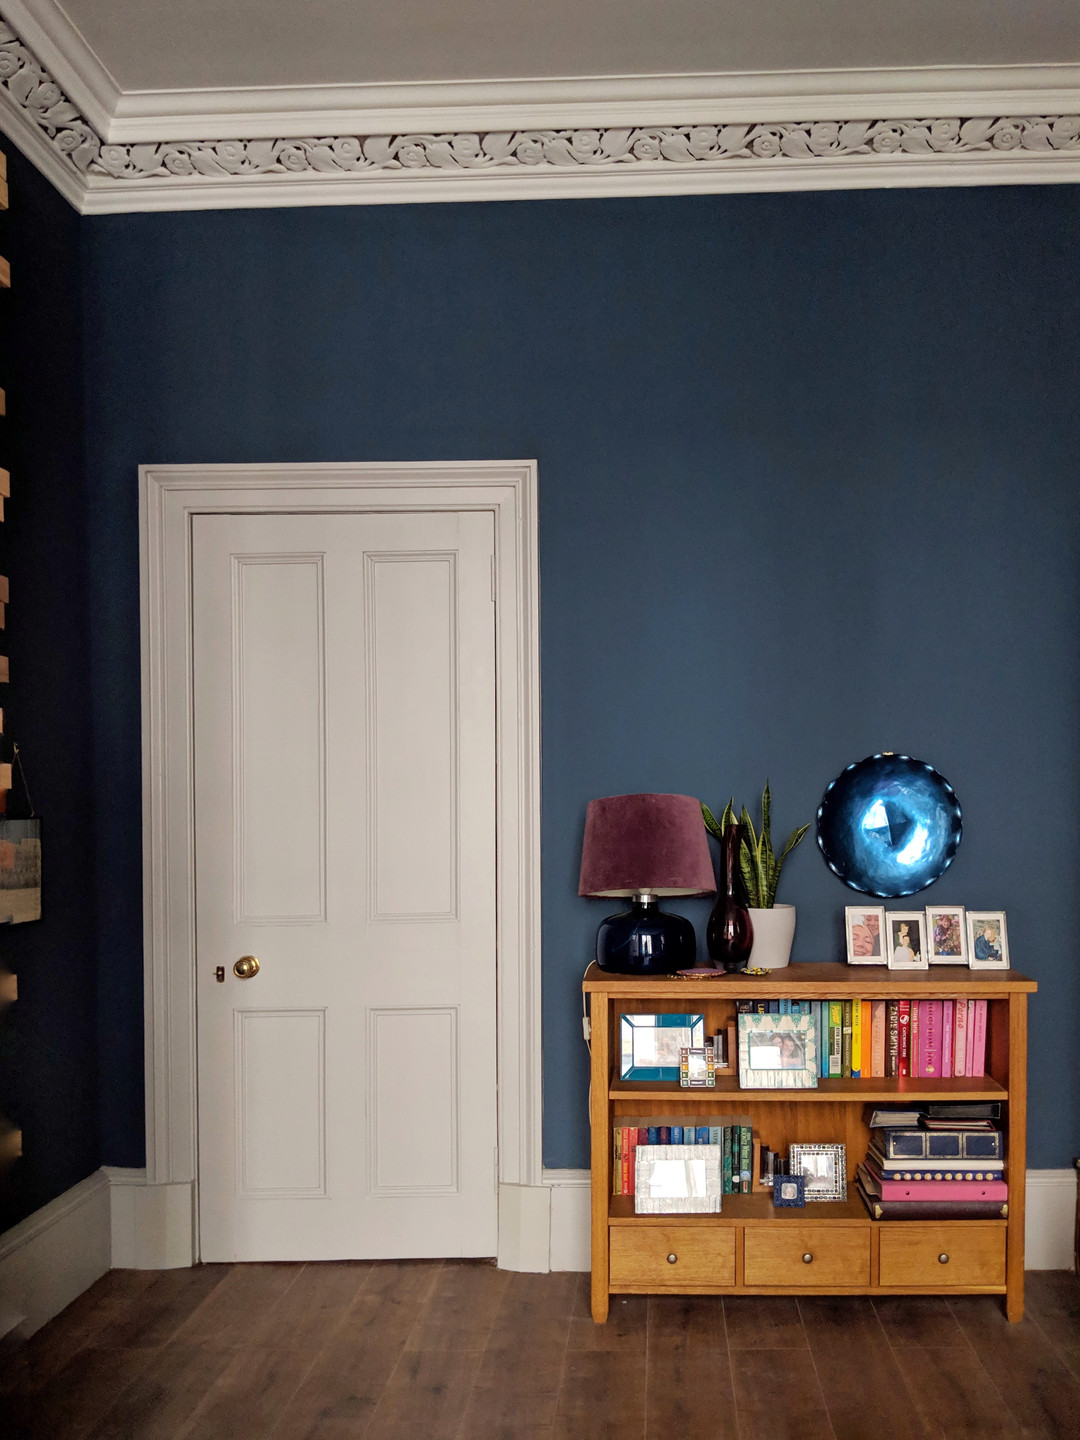 Bright accessories styled on a bookcase with a dark blue wall and grey door